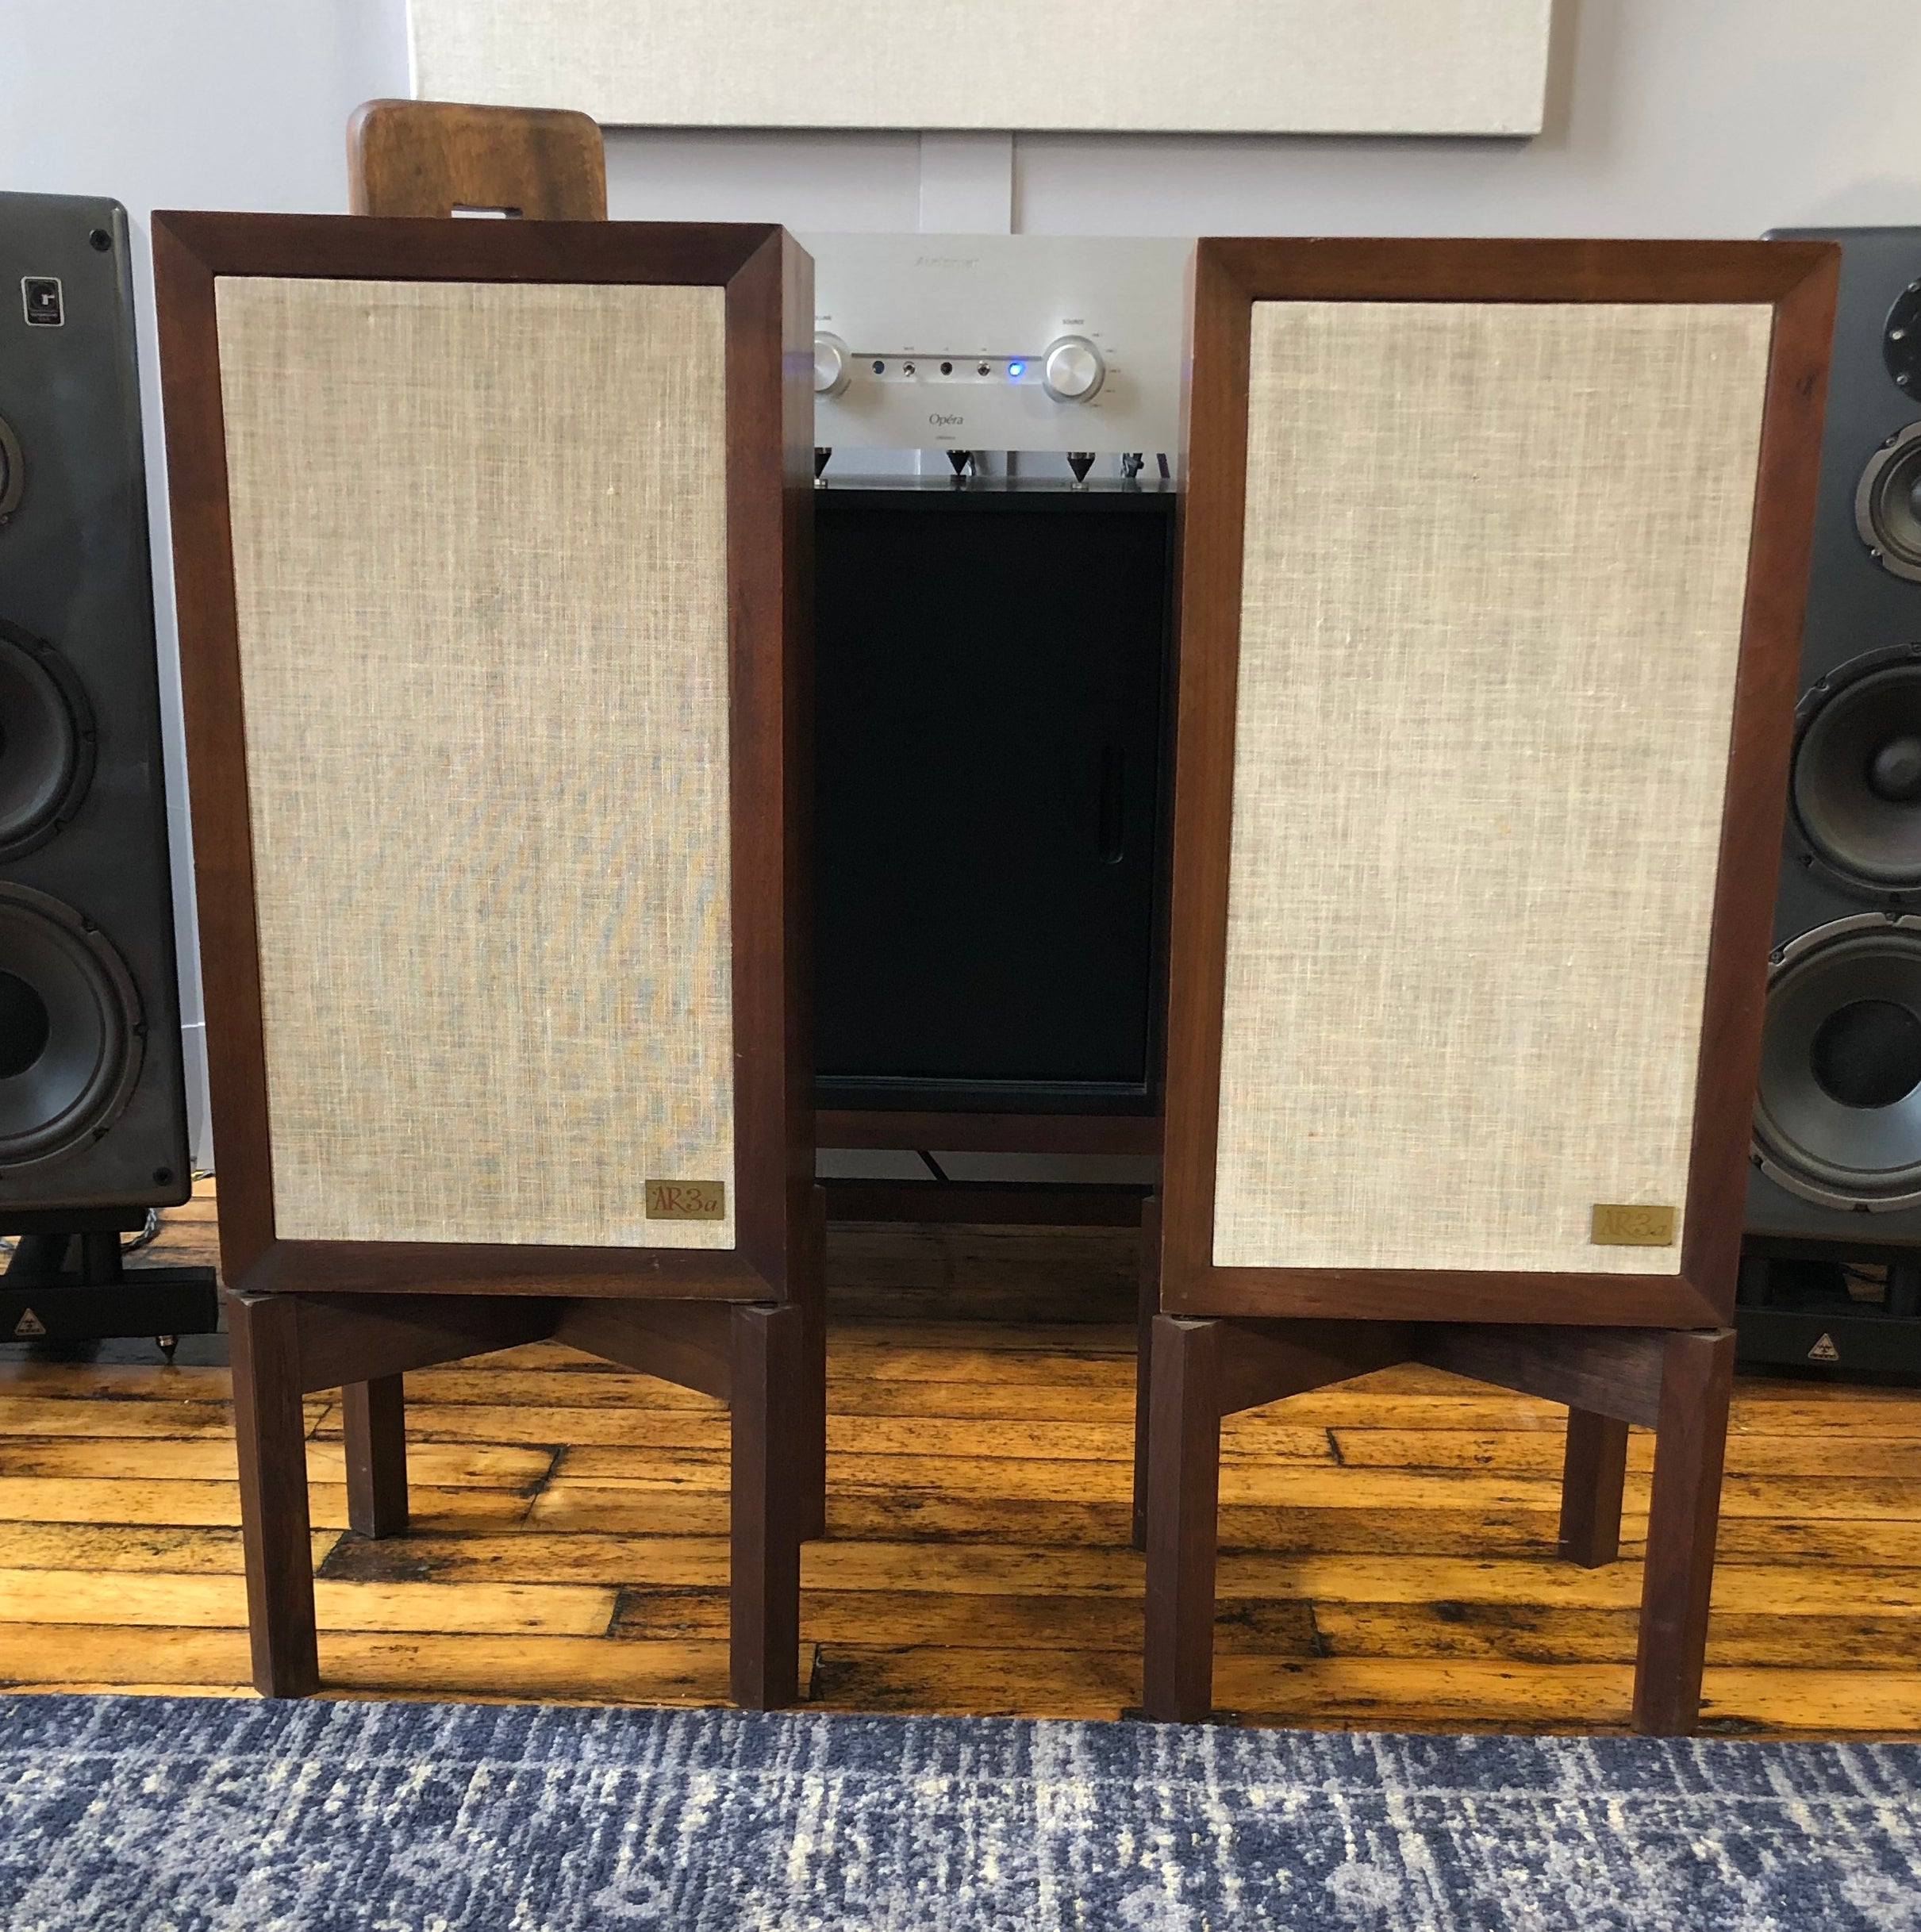 SOLD: Acoustic Research AR3a Vintage Loudspeakers, Restored